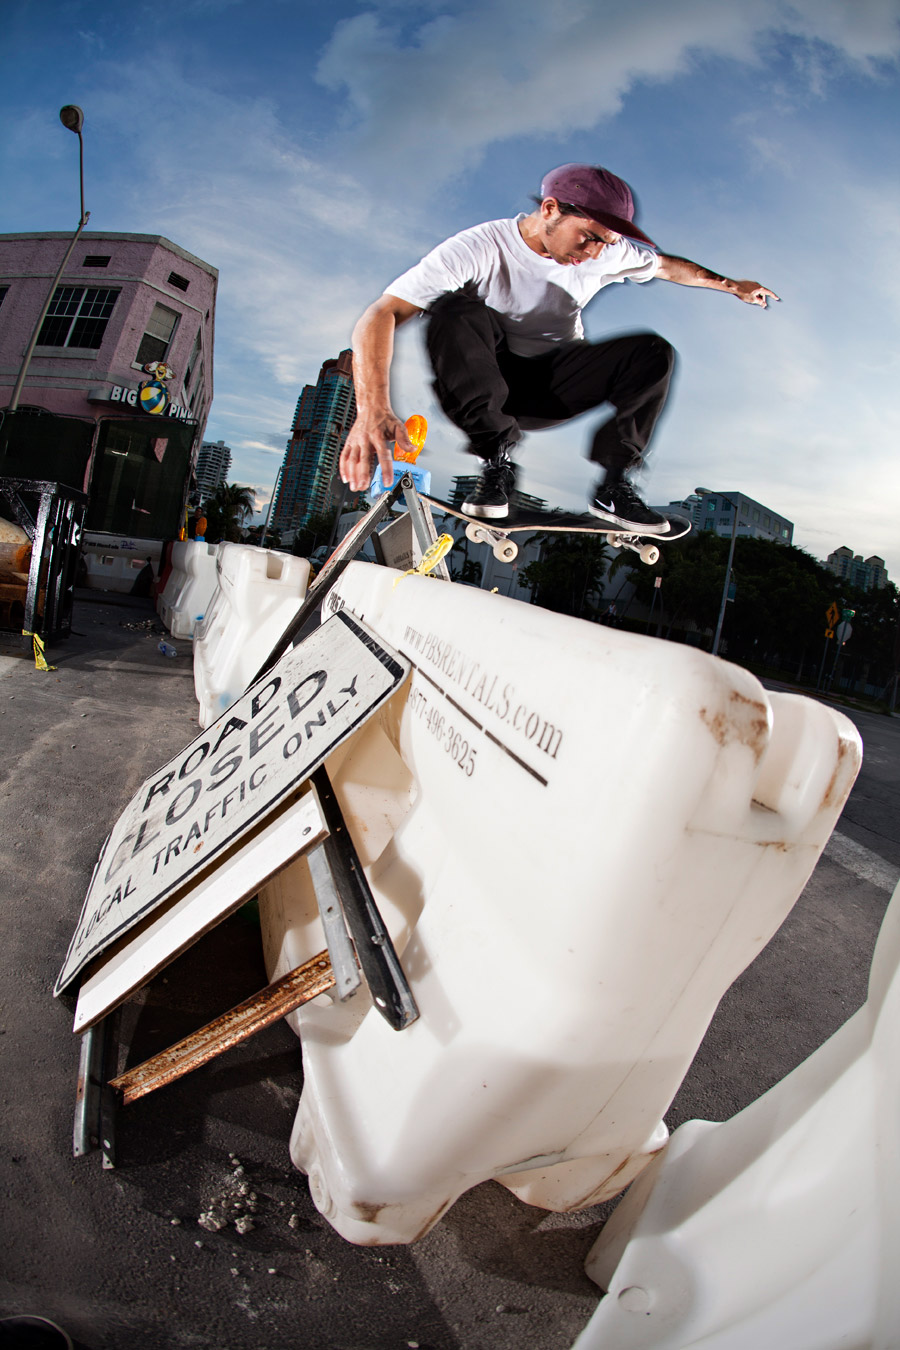 Koki makes good use of the constant construction zone gold with this switch wallie. Shot by Jason Henry.